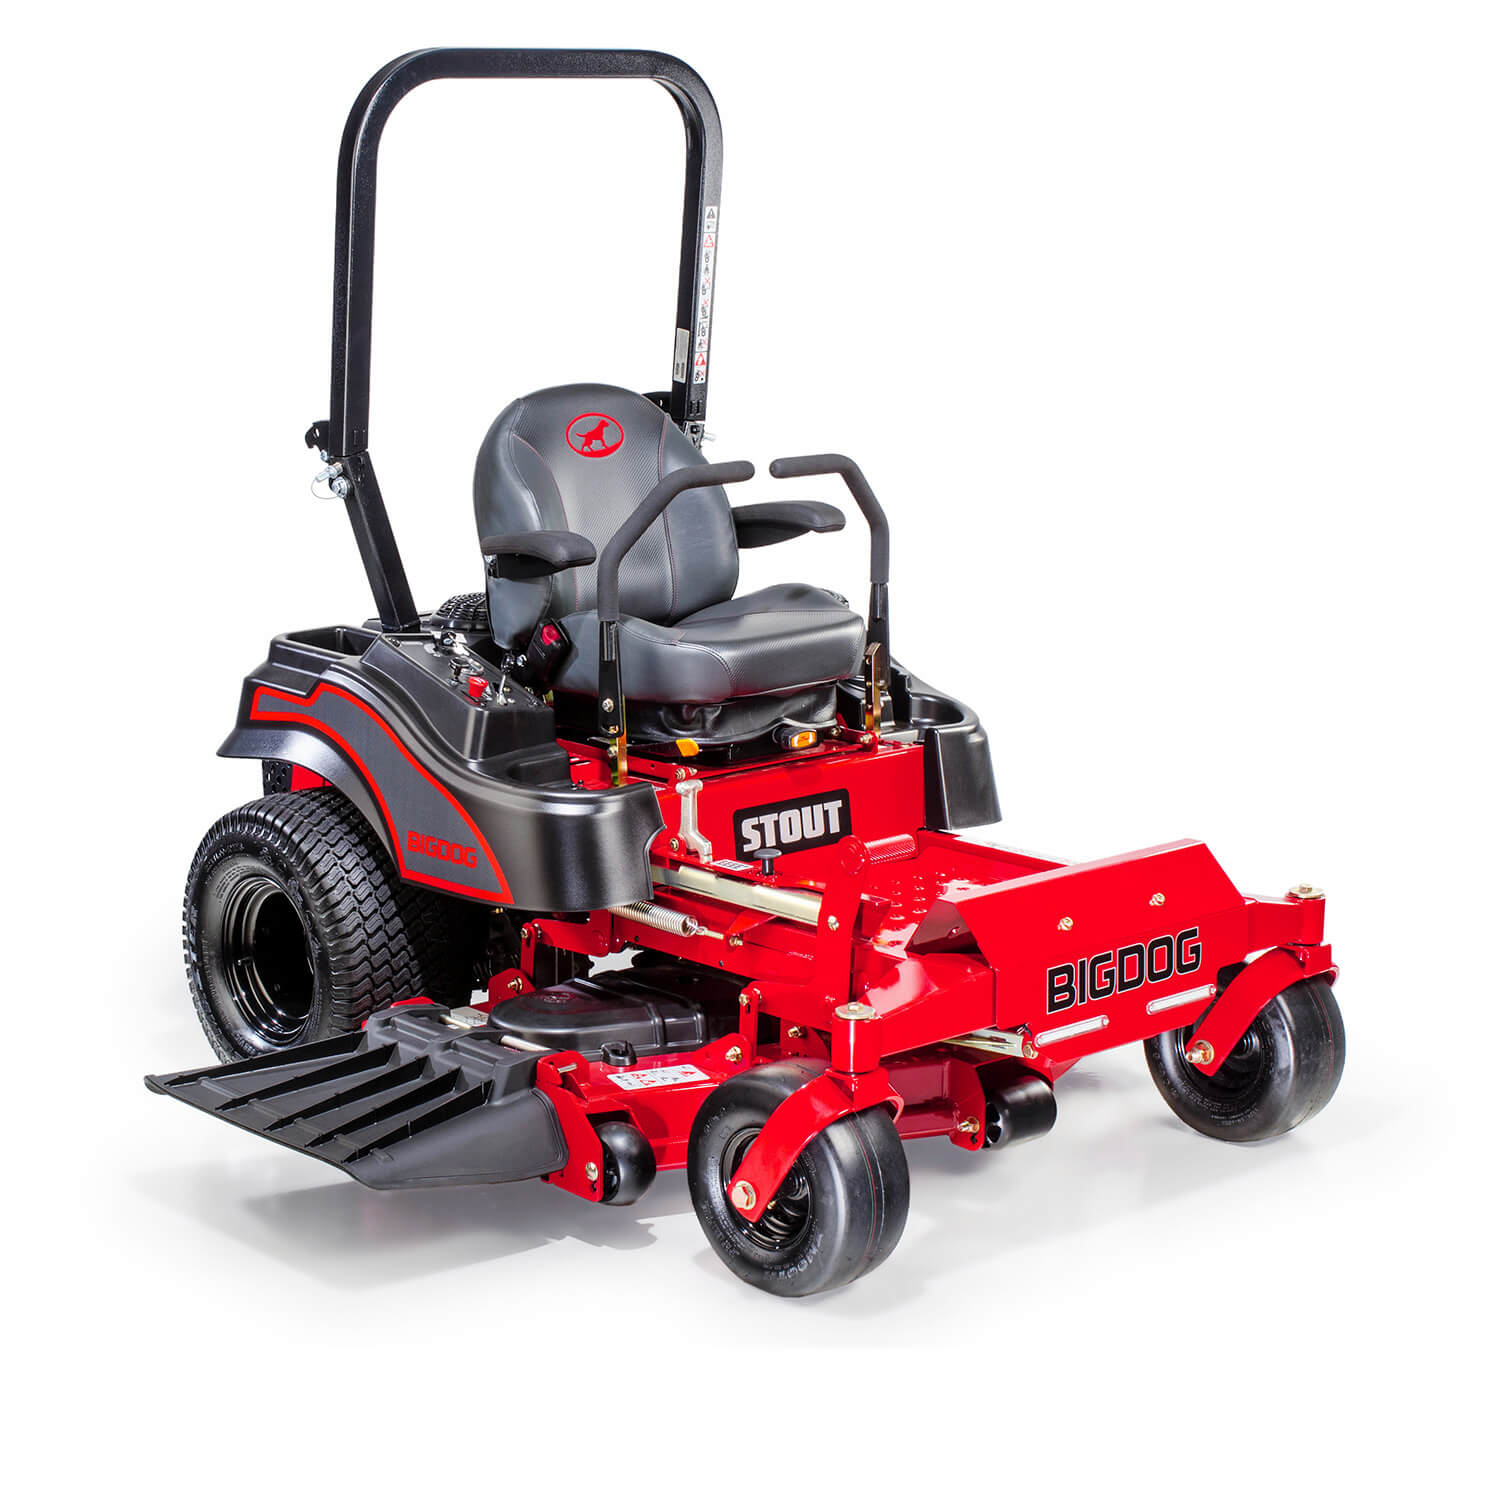 Image of the front three quarters of a red riding mower